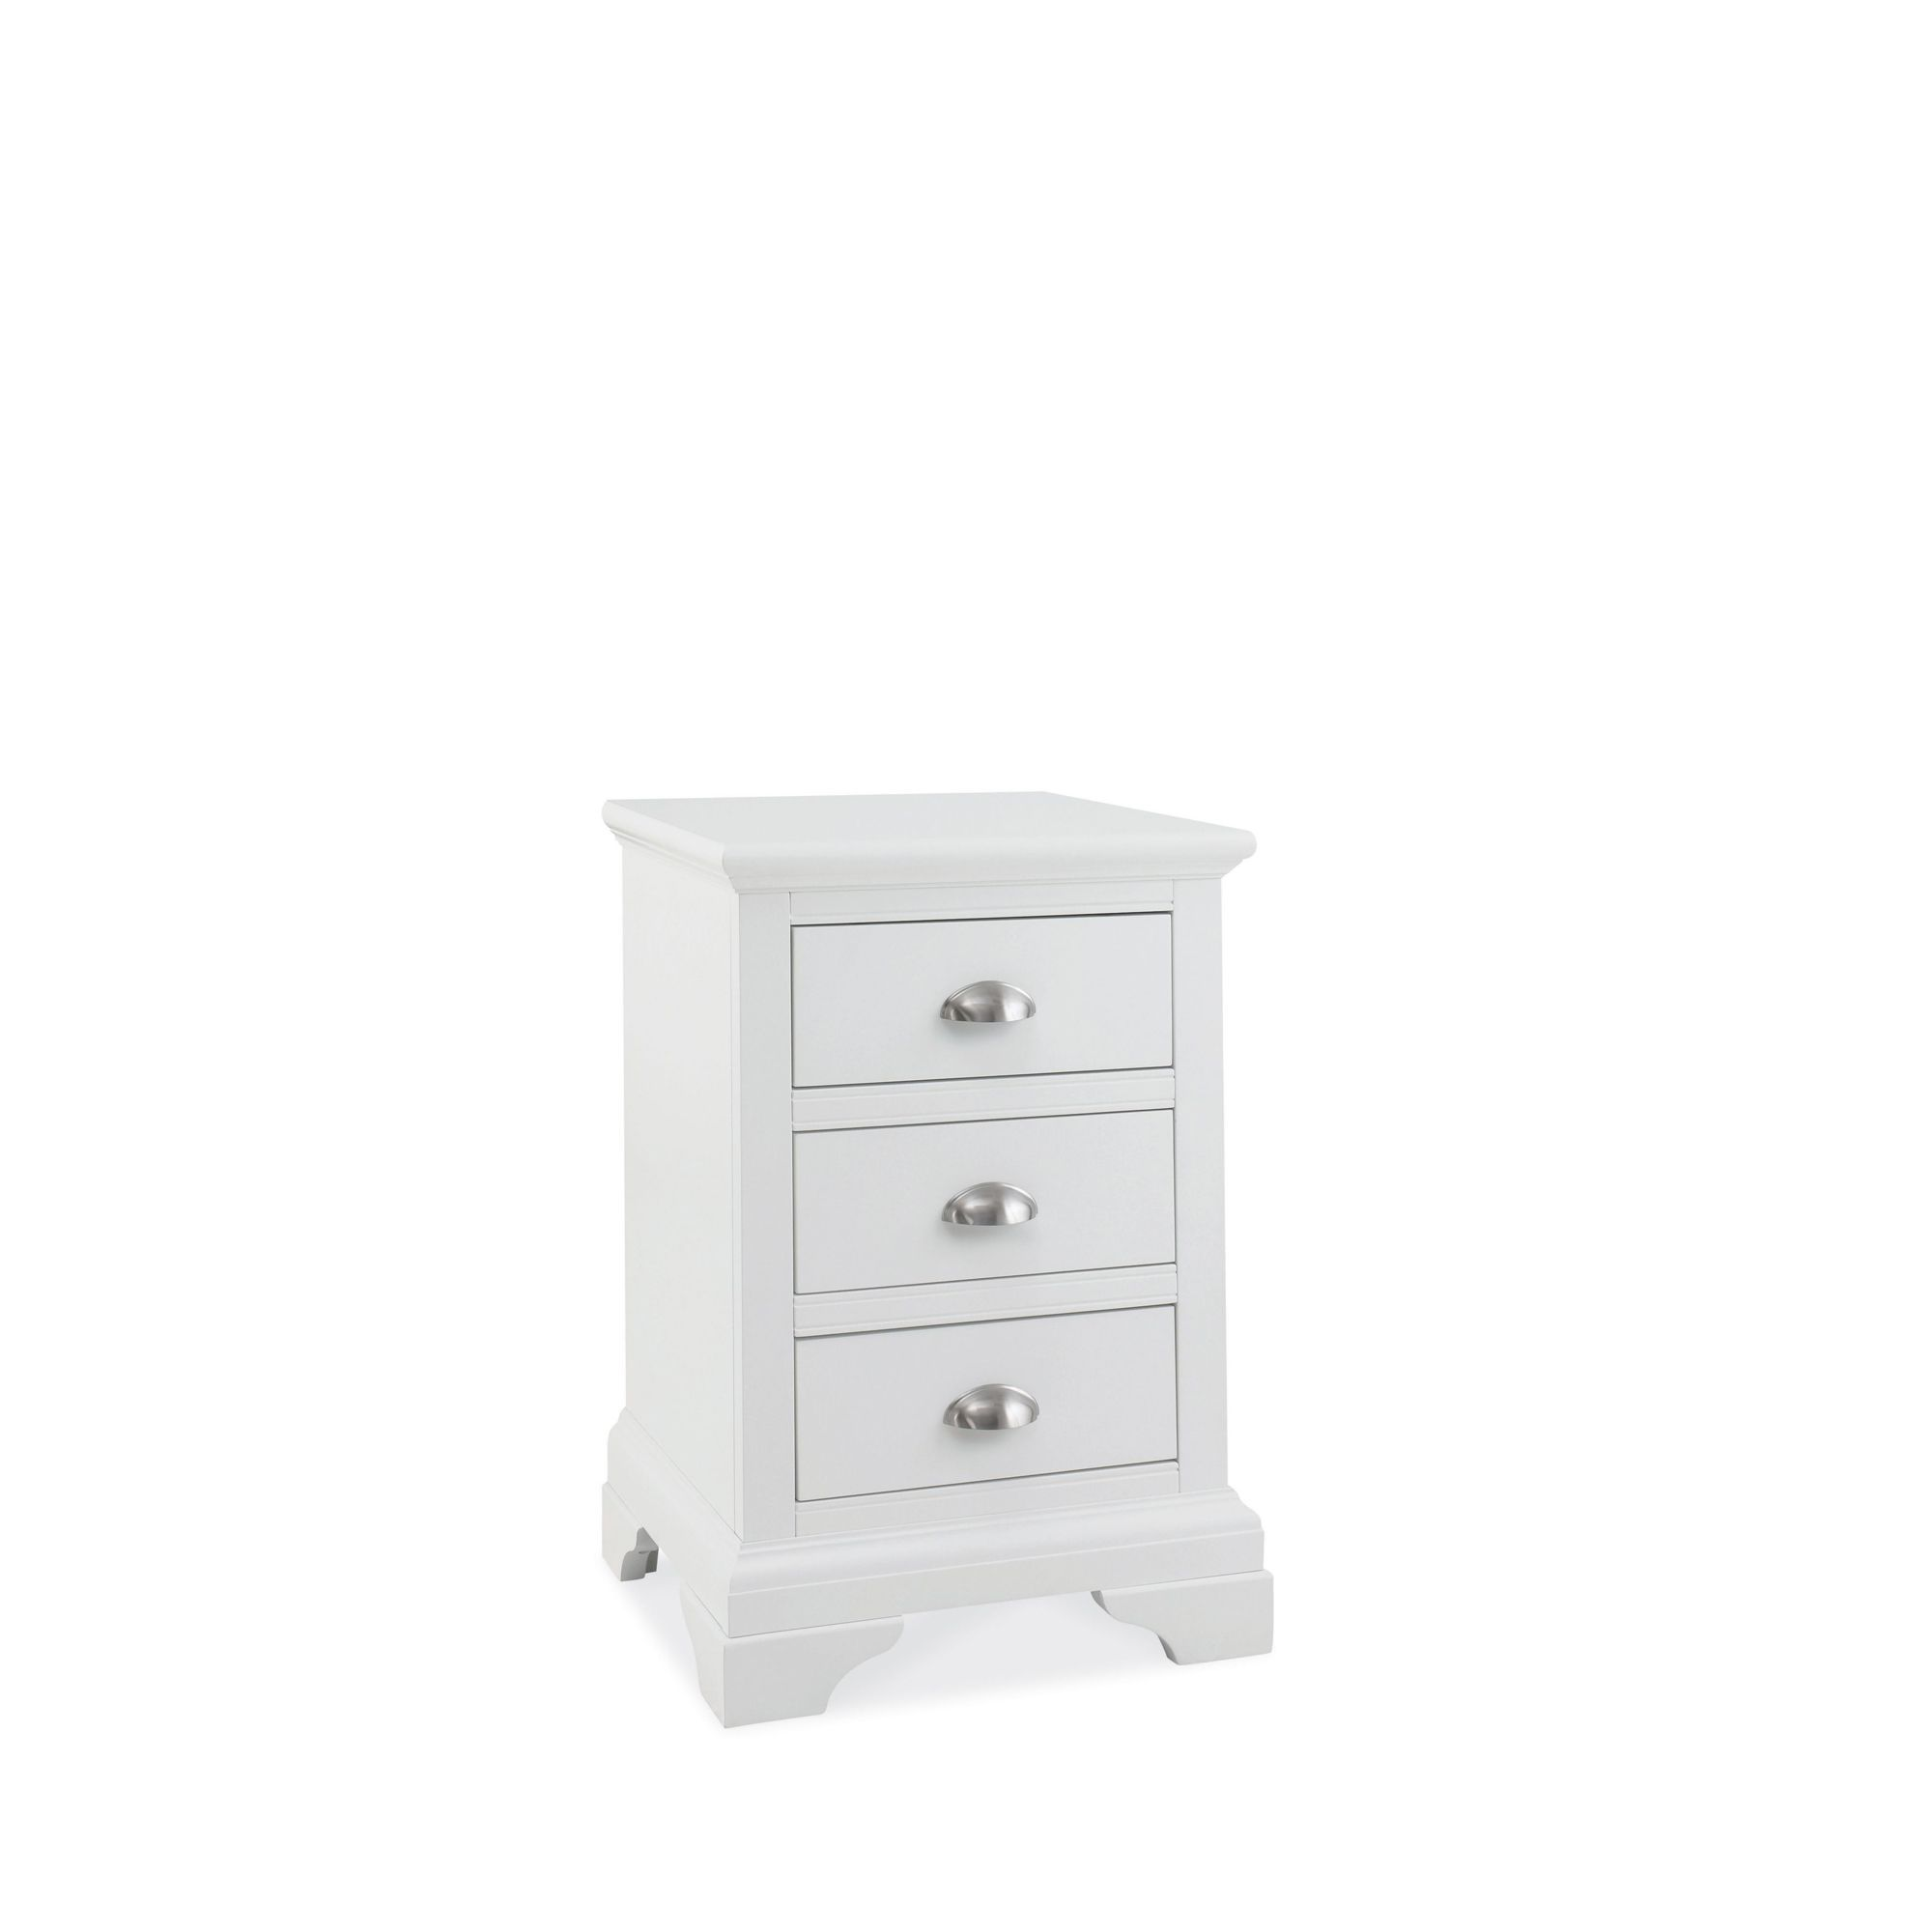 gallery dtl harmony legacy nightstand media antique classic drawer kids linen white desk